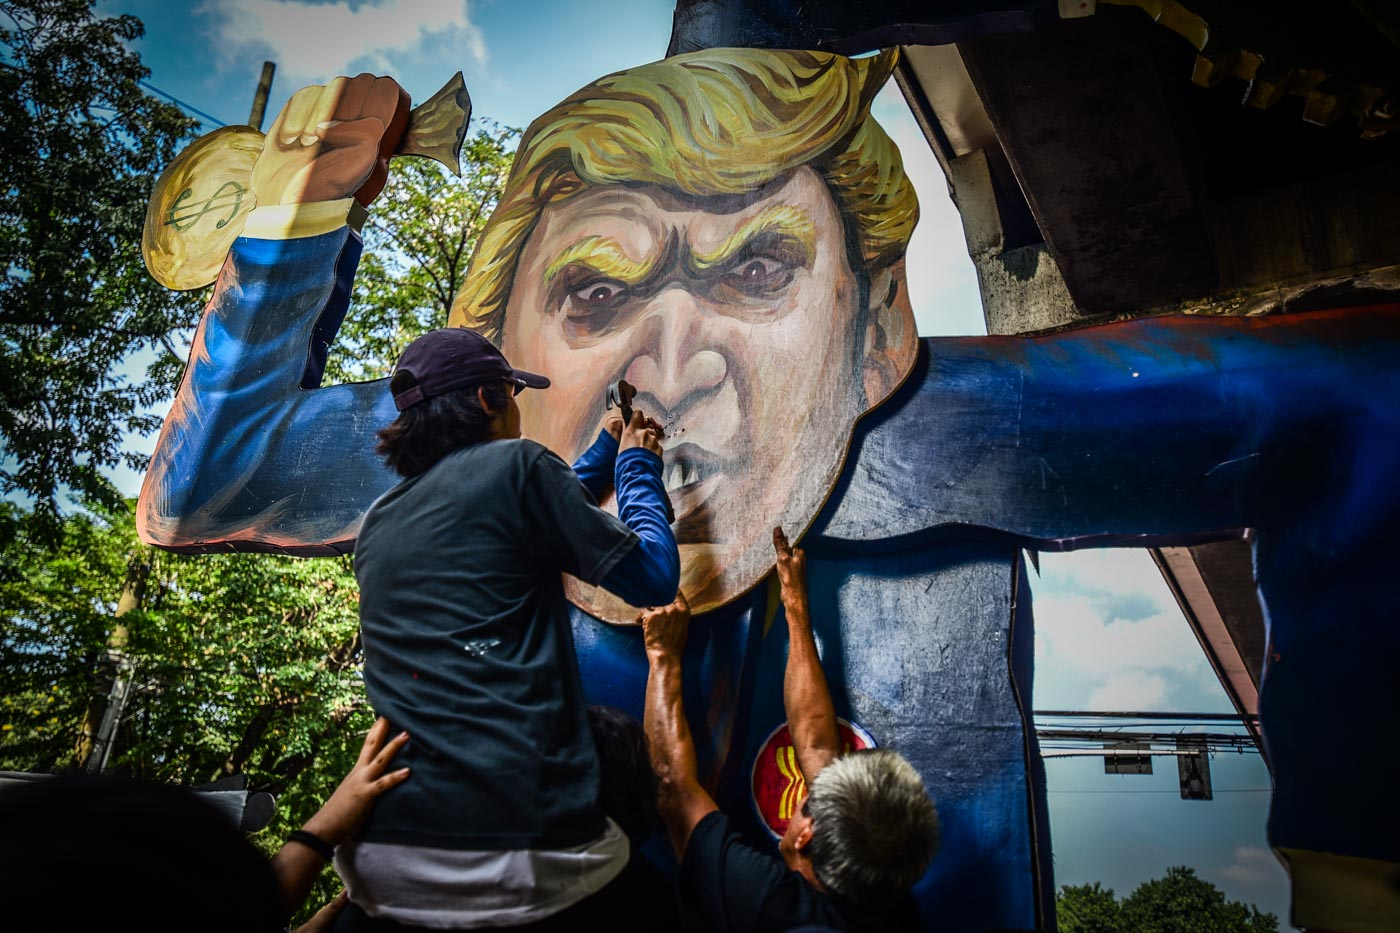 FASCIST SPINNER. Activists unveil the 'Fascist Spinner', a 13-foot tall effigy of US President Donald Trump.